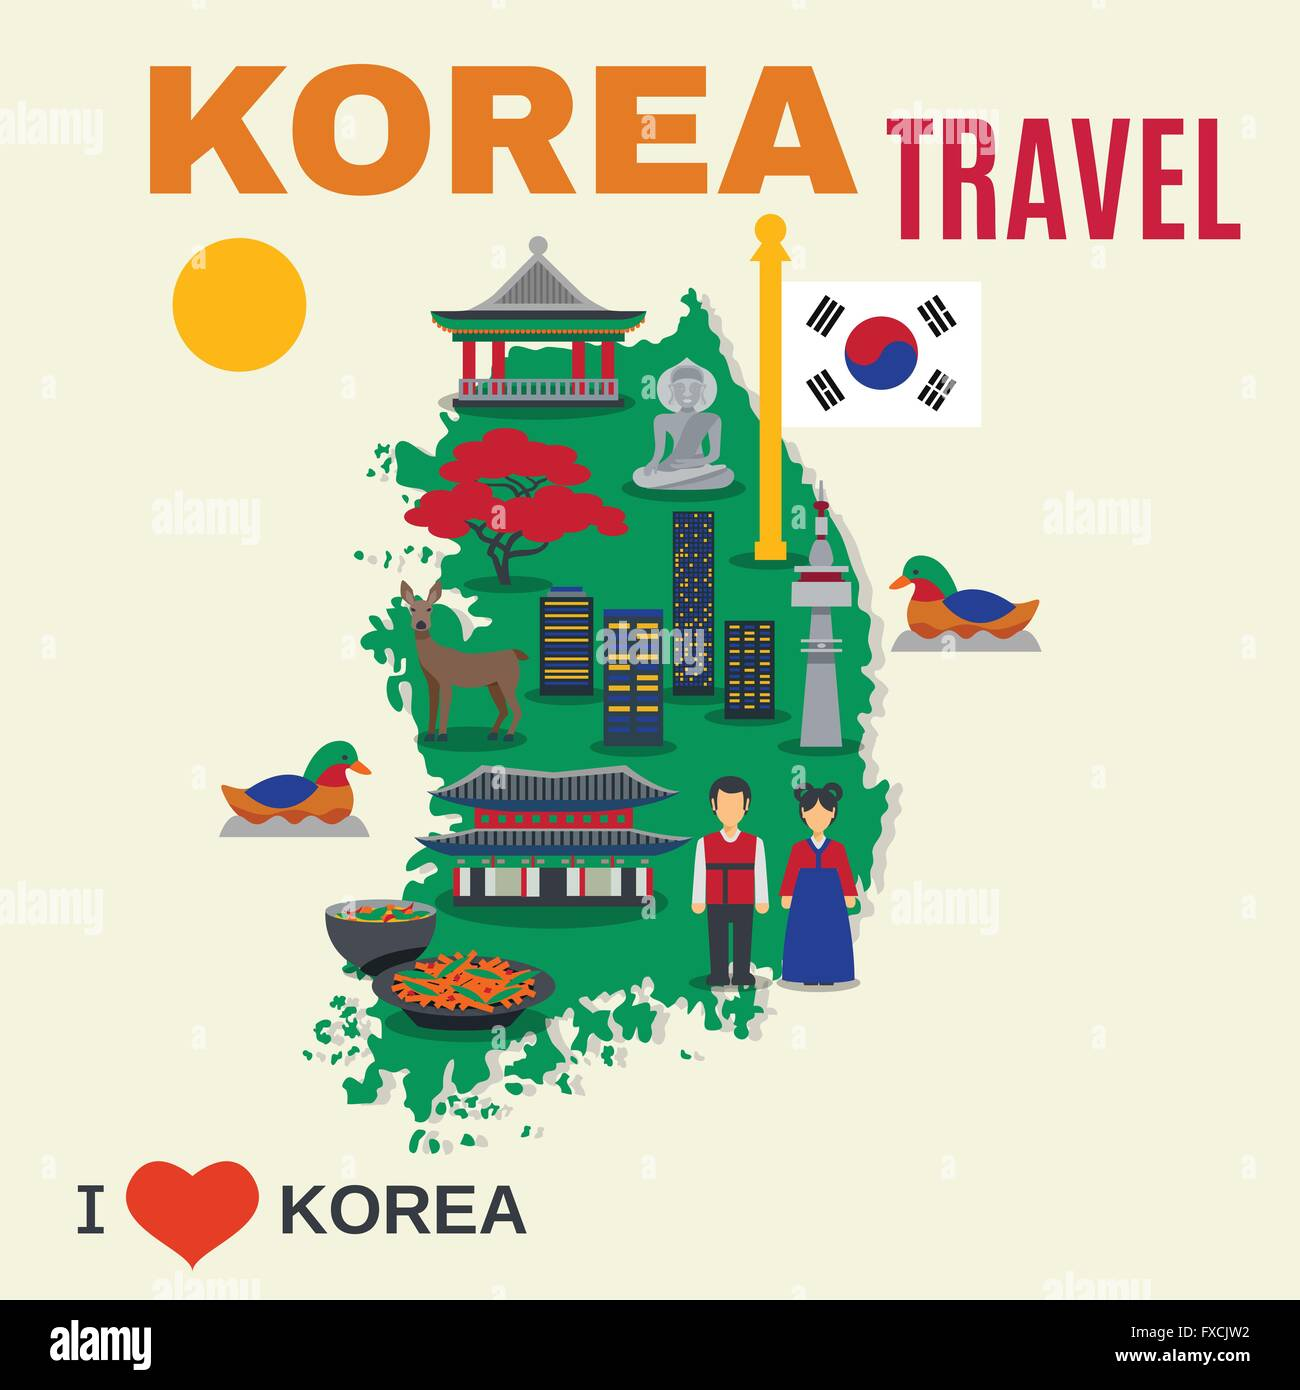 Korean Culture Symbols Map Travel Poster Stock Vector Art